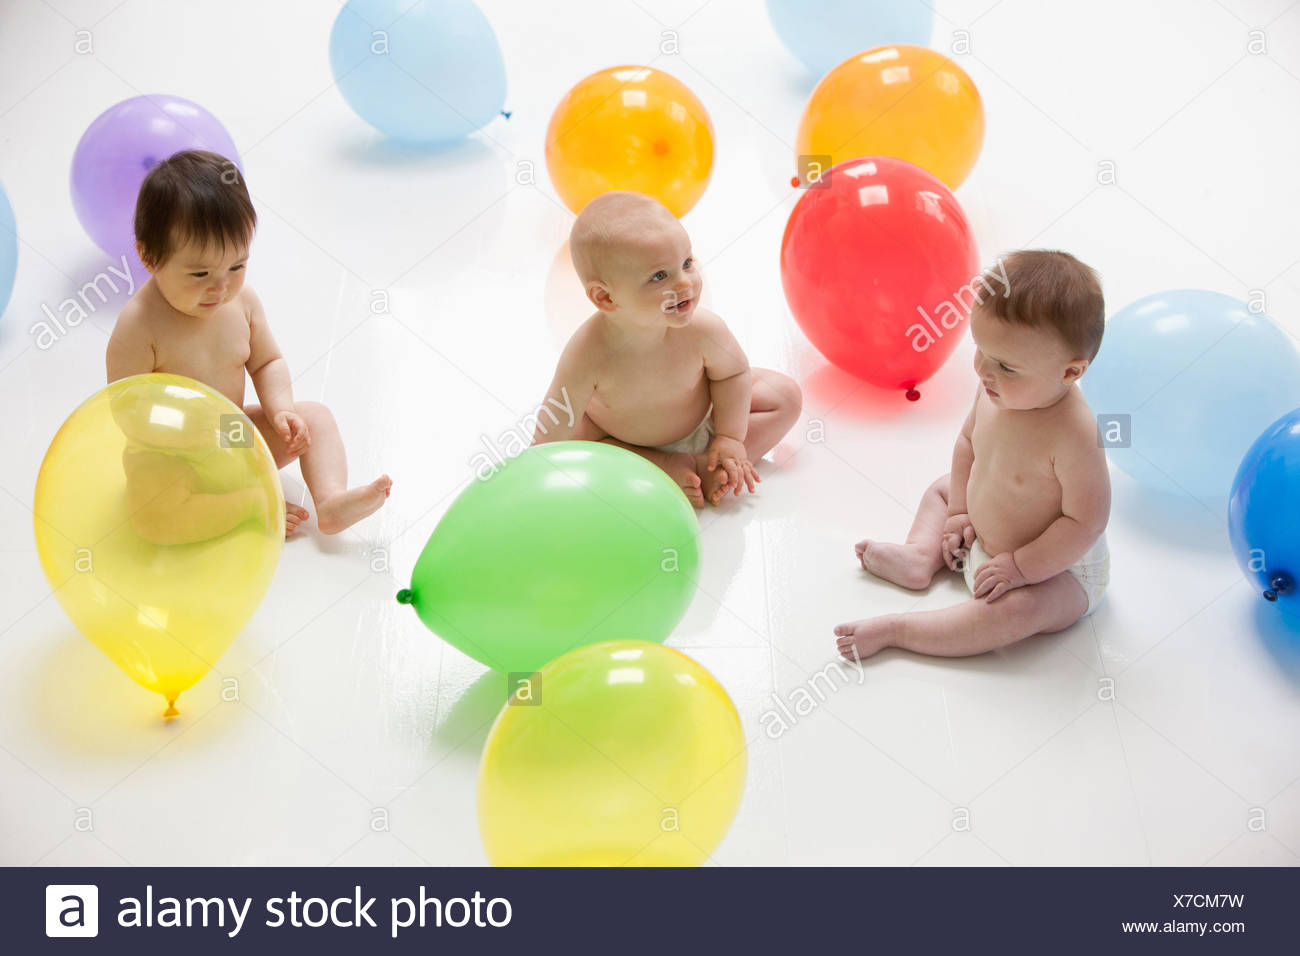 Babies with balloons on floor - Stock Image